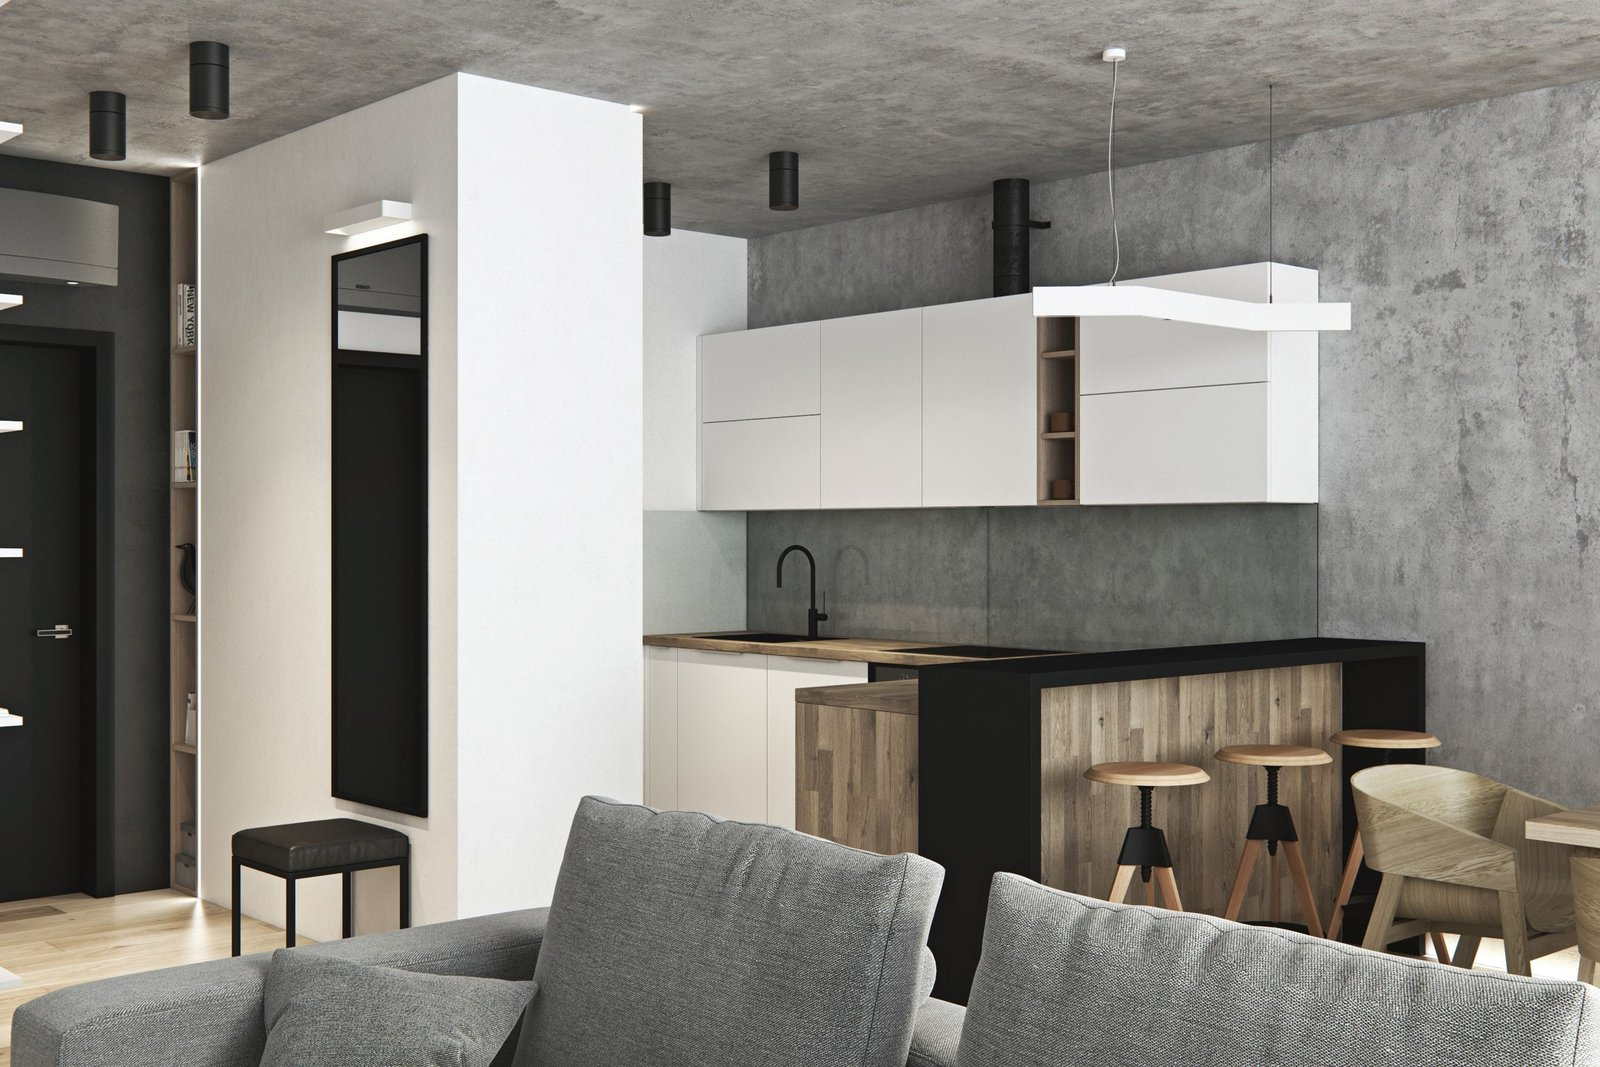 Kitchen  Interior Design Project in Contemporary Style by Geometrium